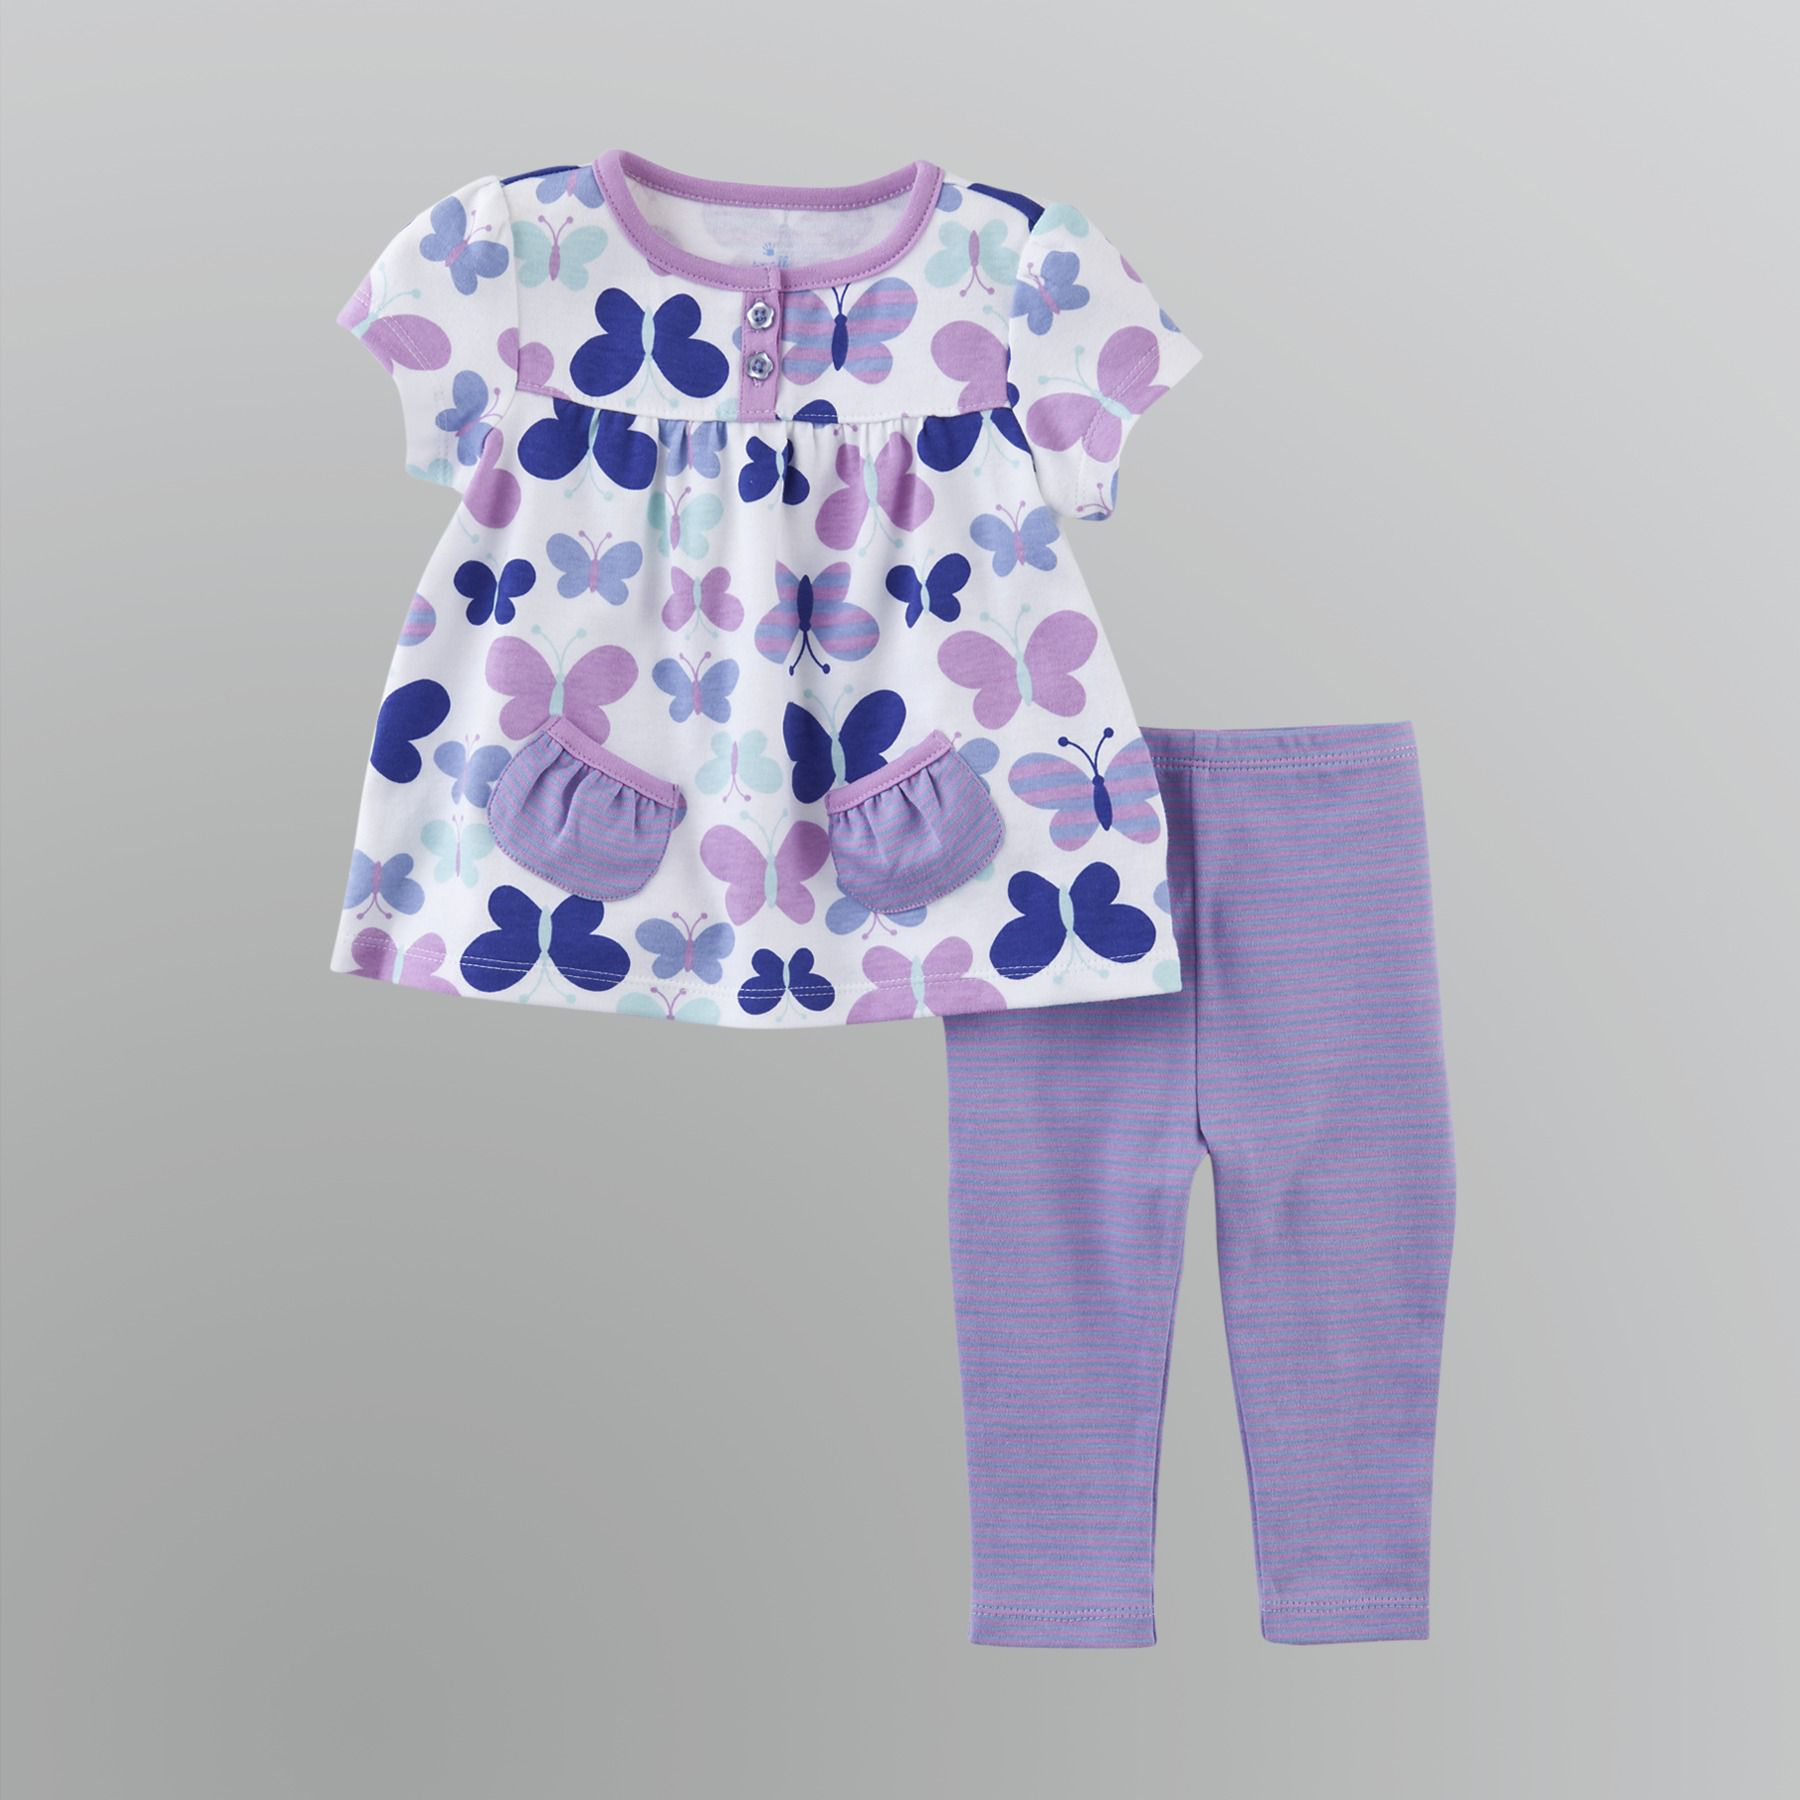 Small Wonders Infant Toddler Girl s Pants Set